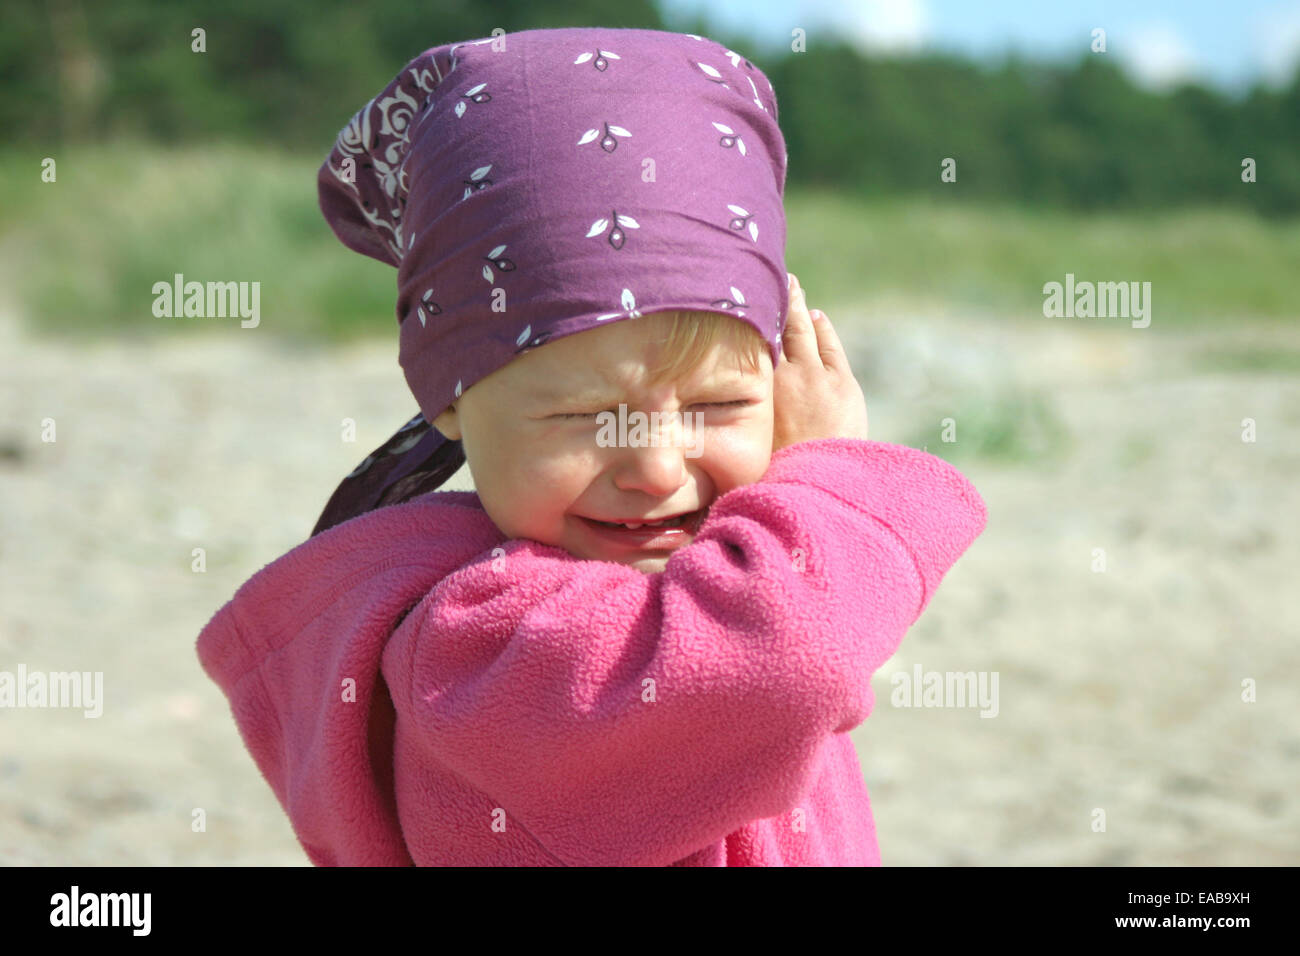 Portrait of angry and crying 2-3 years old girl - Stock Image